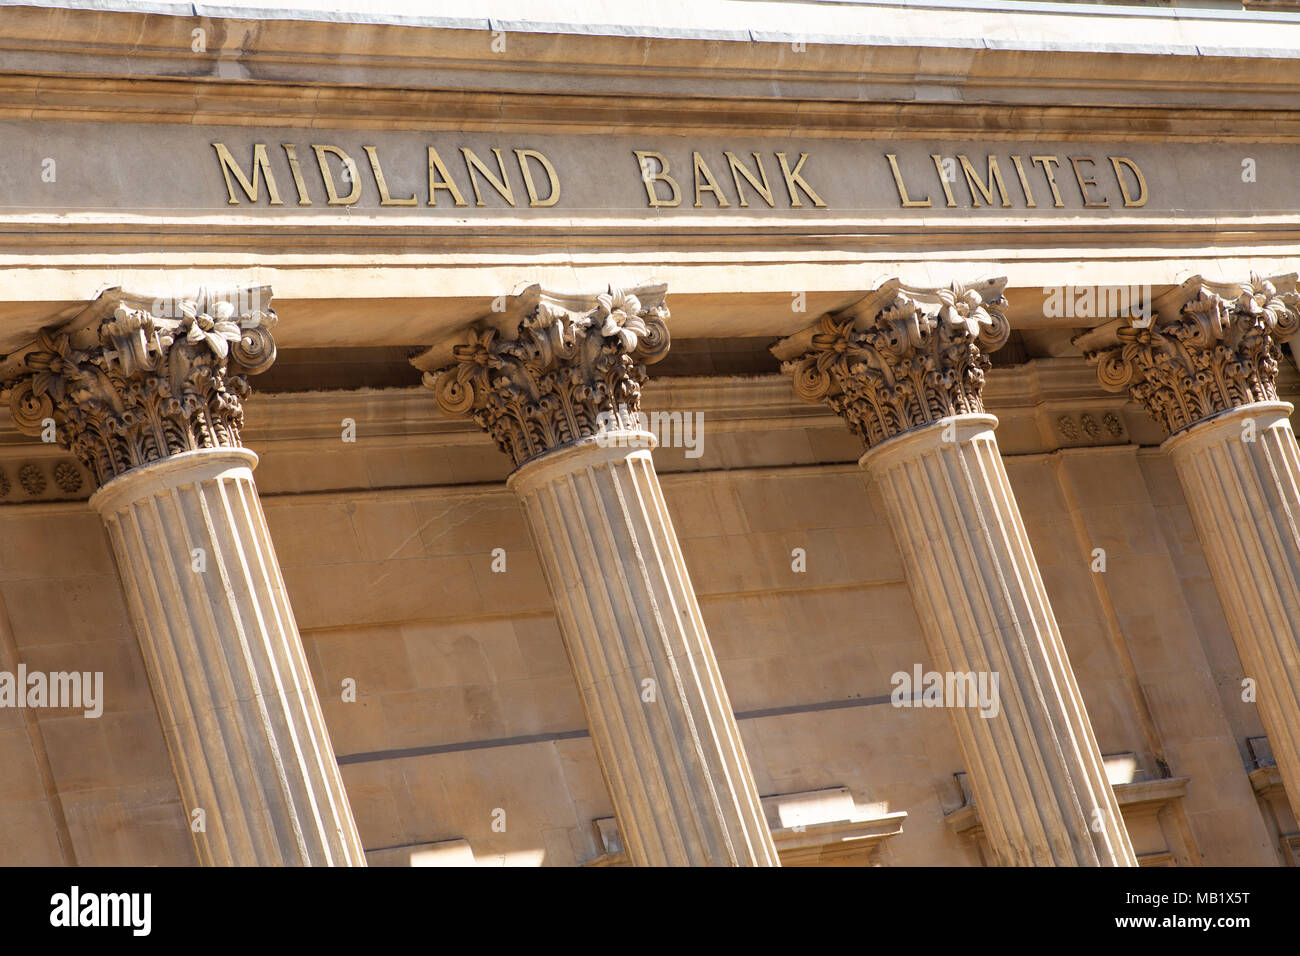 Detail from The Midland Bank Building situated on Waterloo Street in Birmingham City Centre - Stock Image